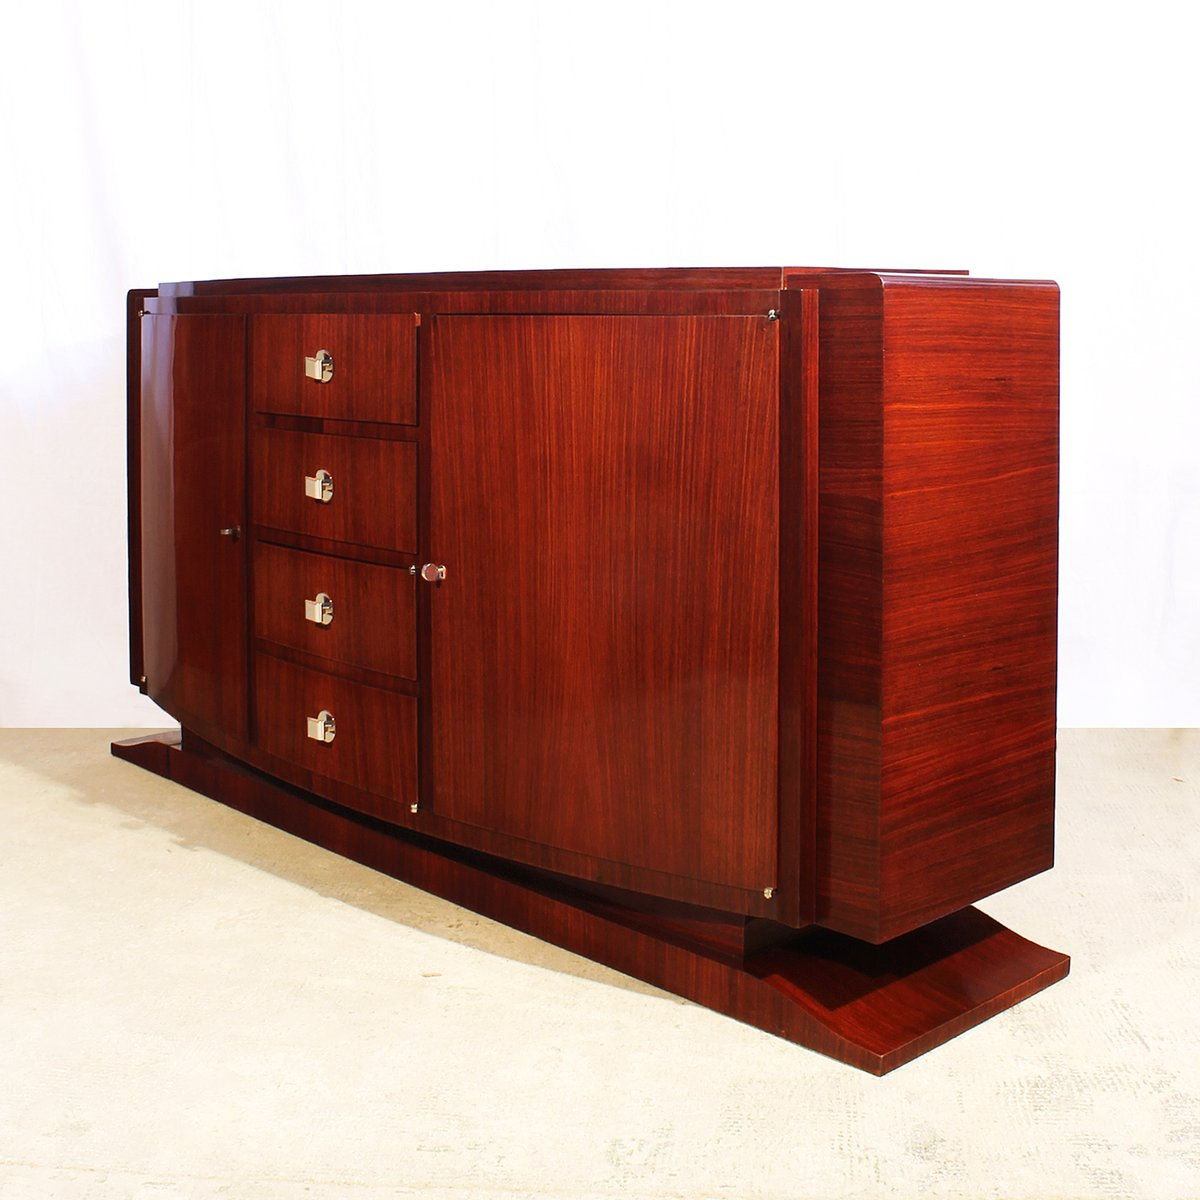 french art deco mahogany rosewood sideboard 1930s for sale at pamono. Black Bedroom Furniture Sets. Home Design Ideas